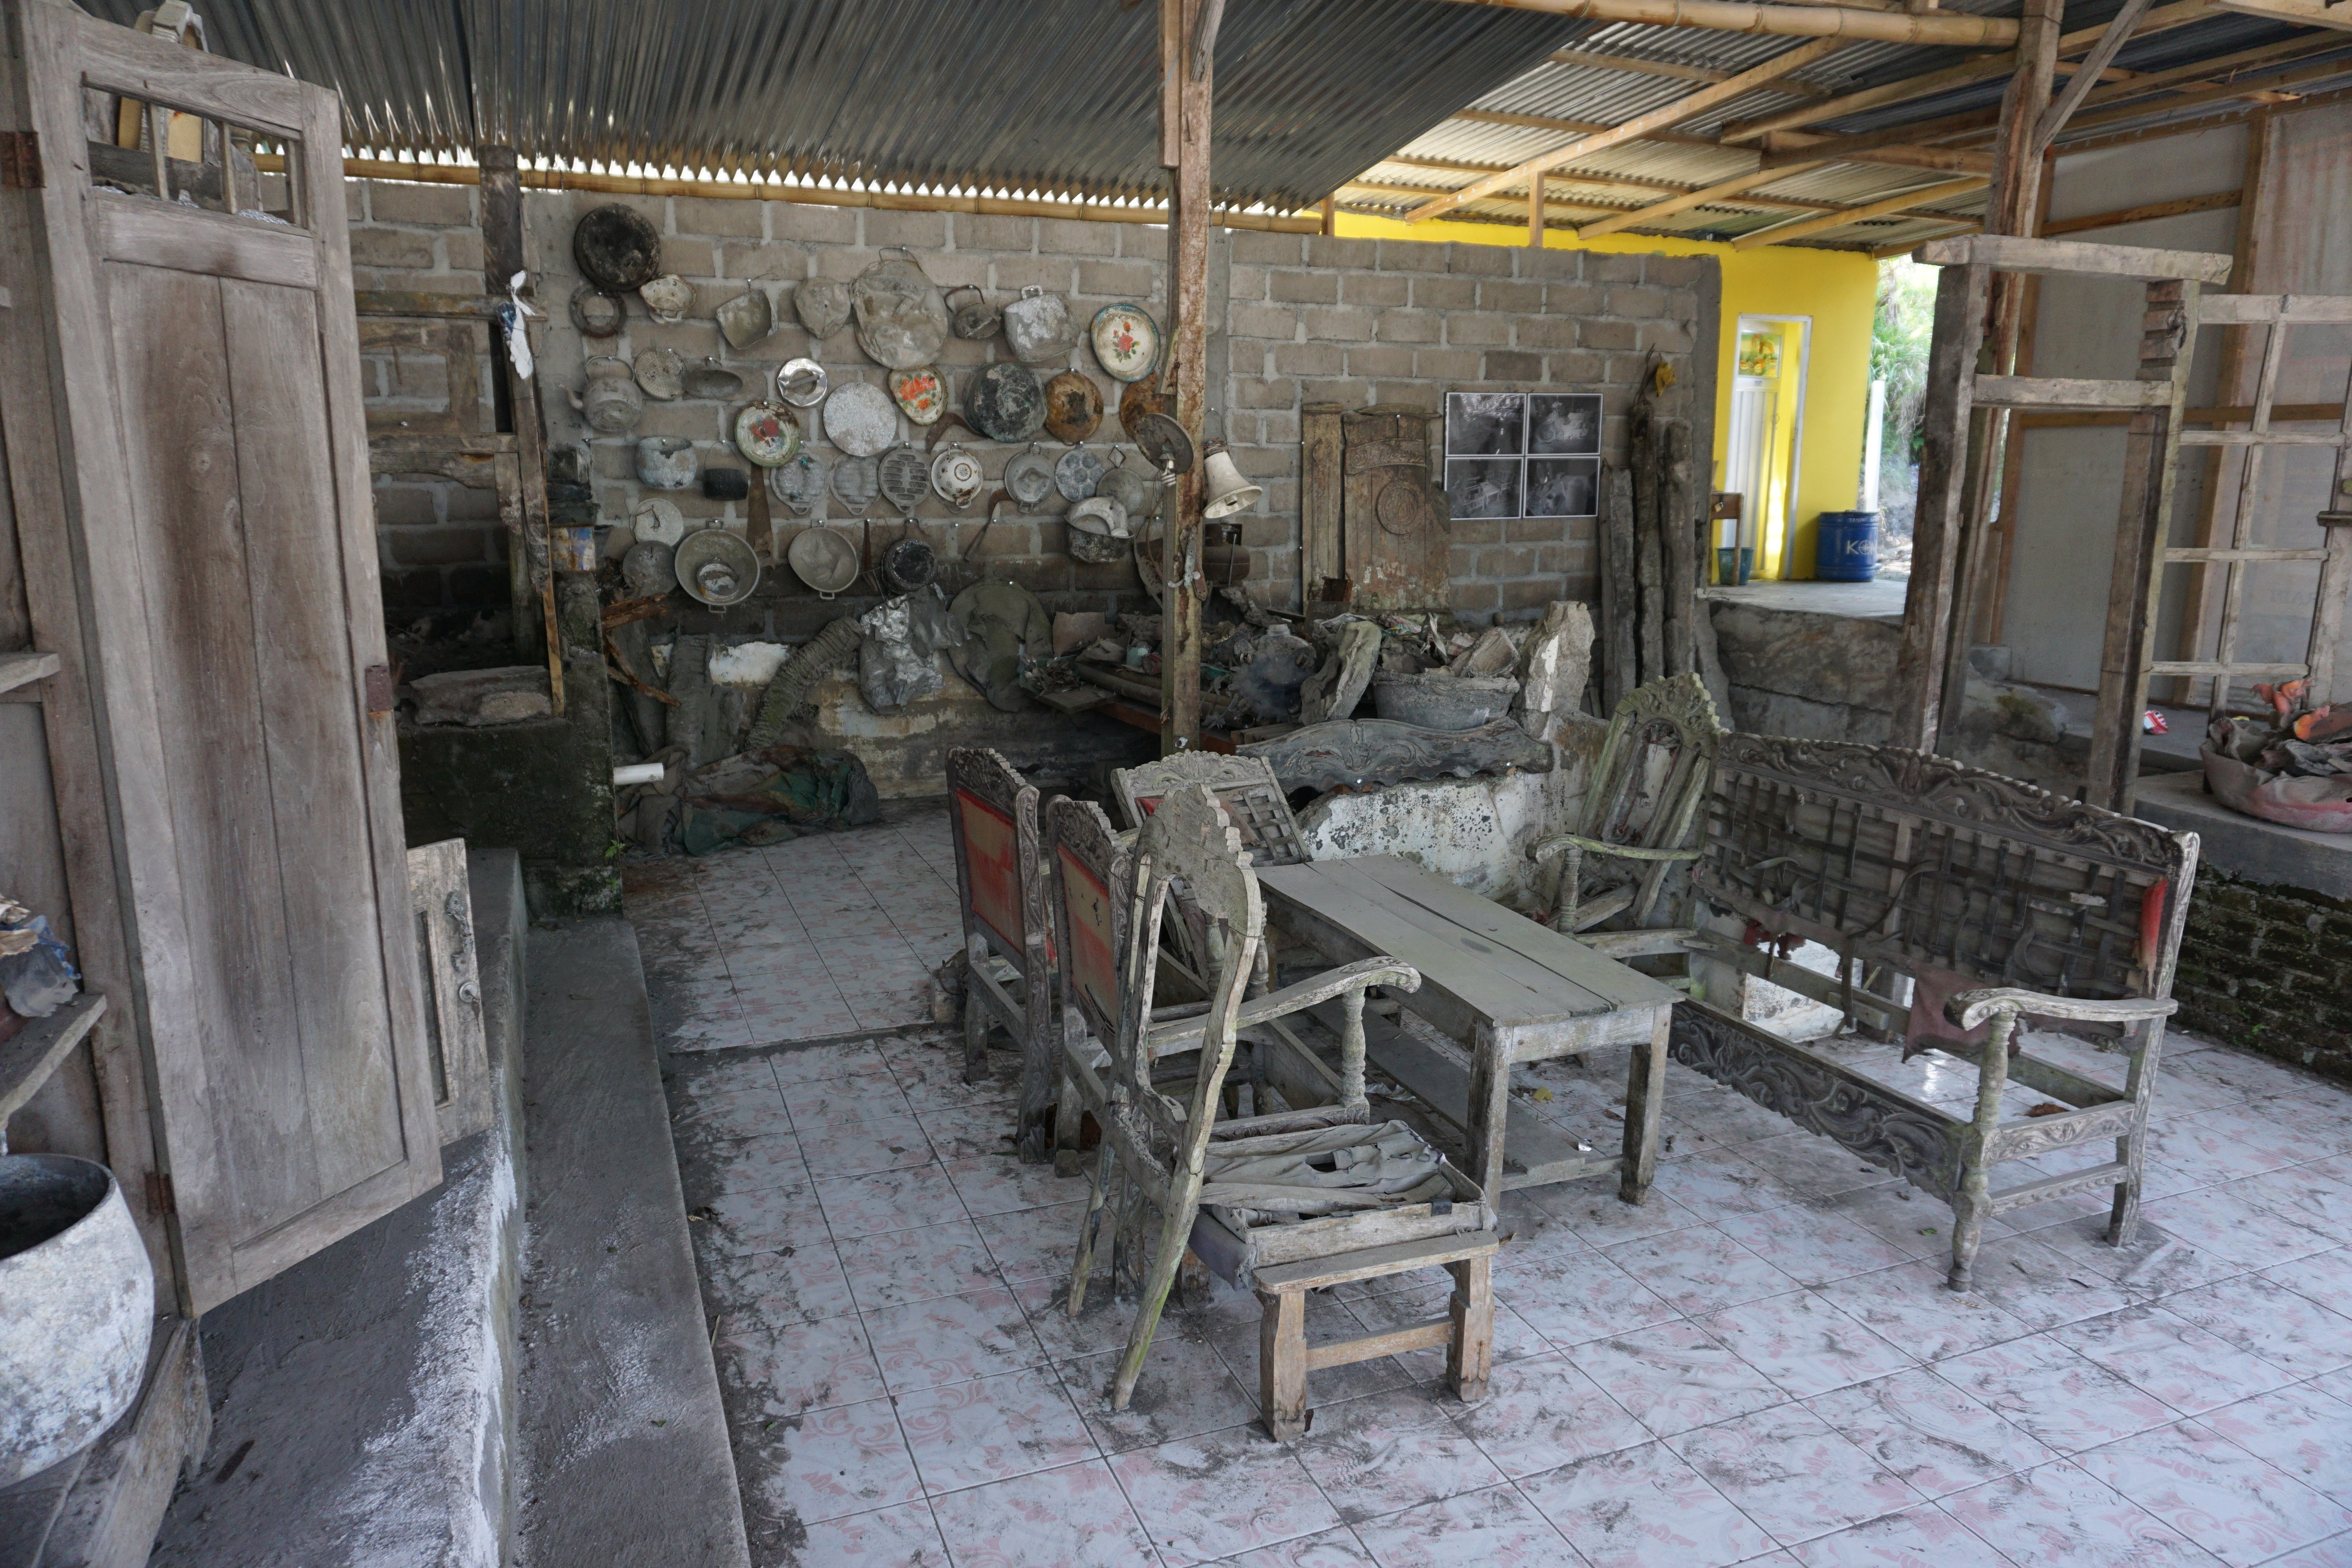 The remains of Mbah Maridjan's house, which was destroyed in the 2010 eruption of Mount Merapi. (K. Varagur for VOA)